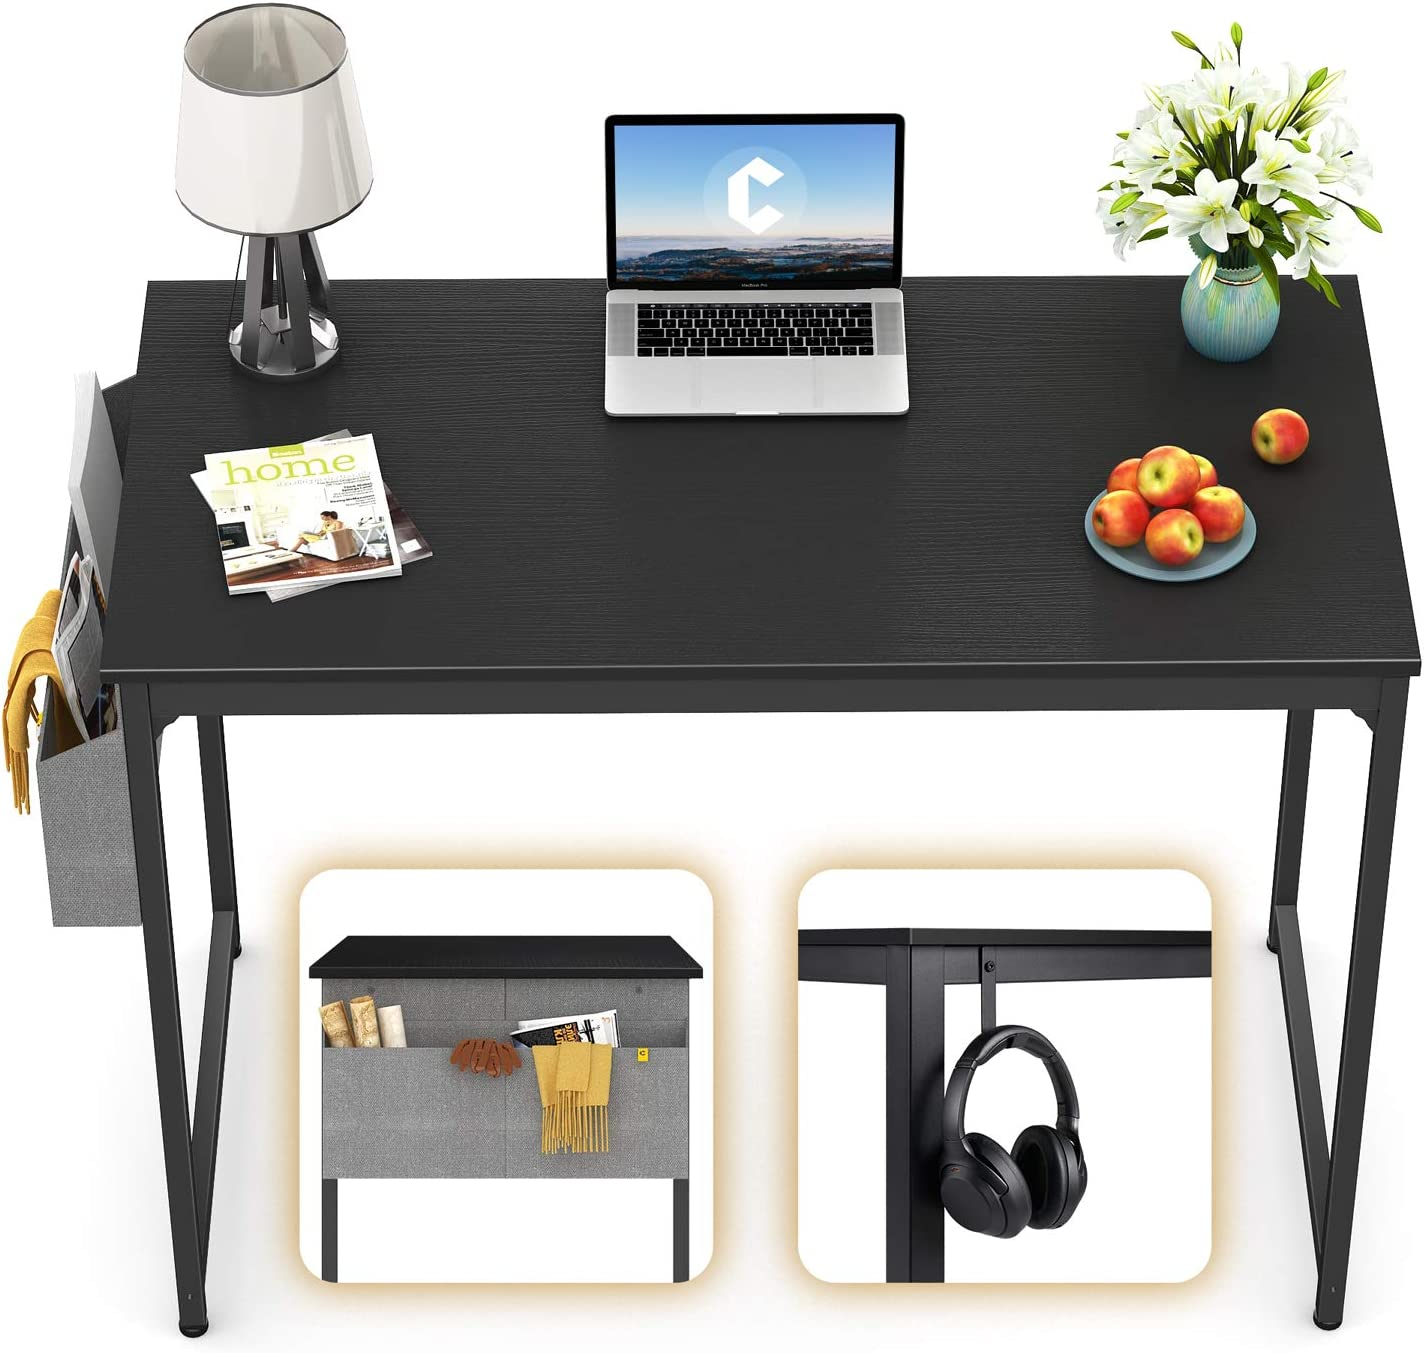 "CubiCubi Computer Desk 32"" Study Writing Table for Home Office, Modern Simple Style PC Desk, Black Metal Frame, Black"